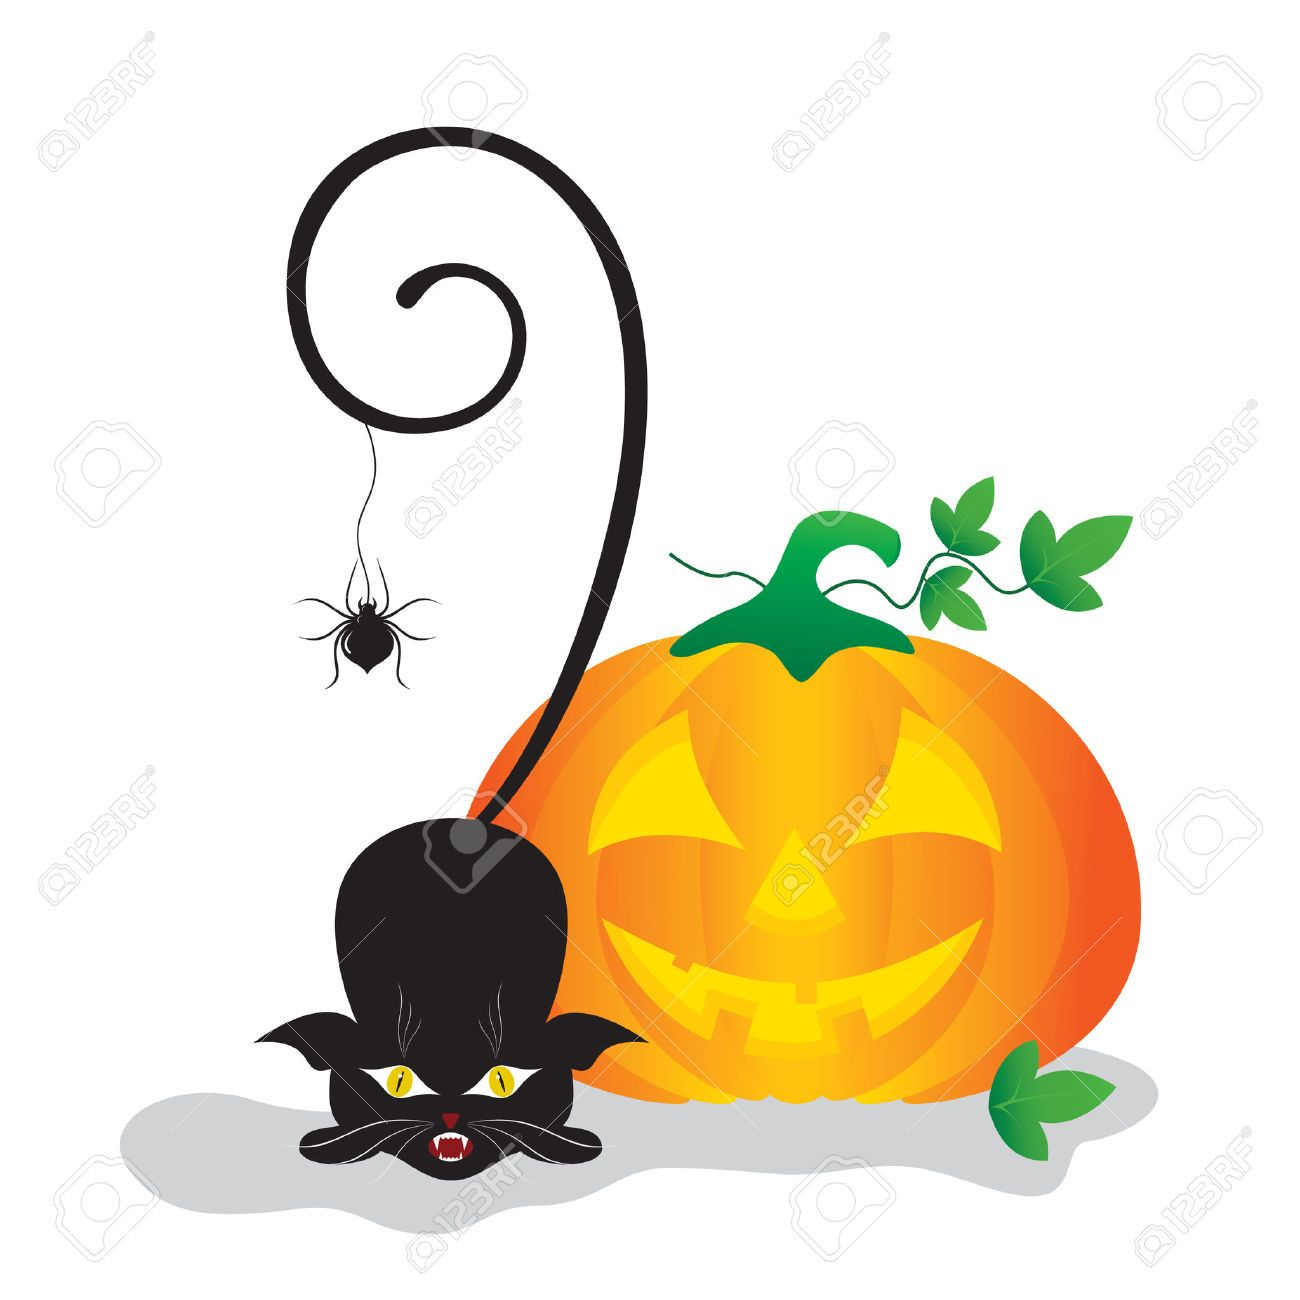 1300x1300 Halloween Clip Art With Pumpkin, Spider And A Black Cat. Royalty